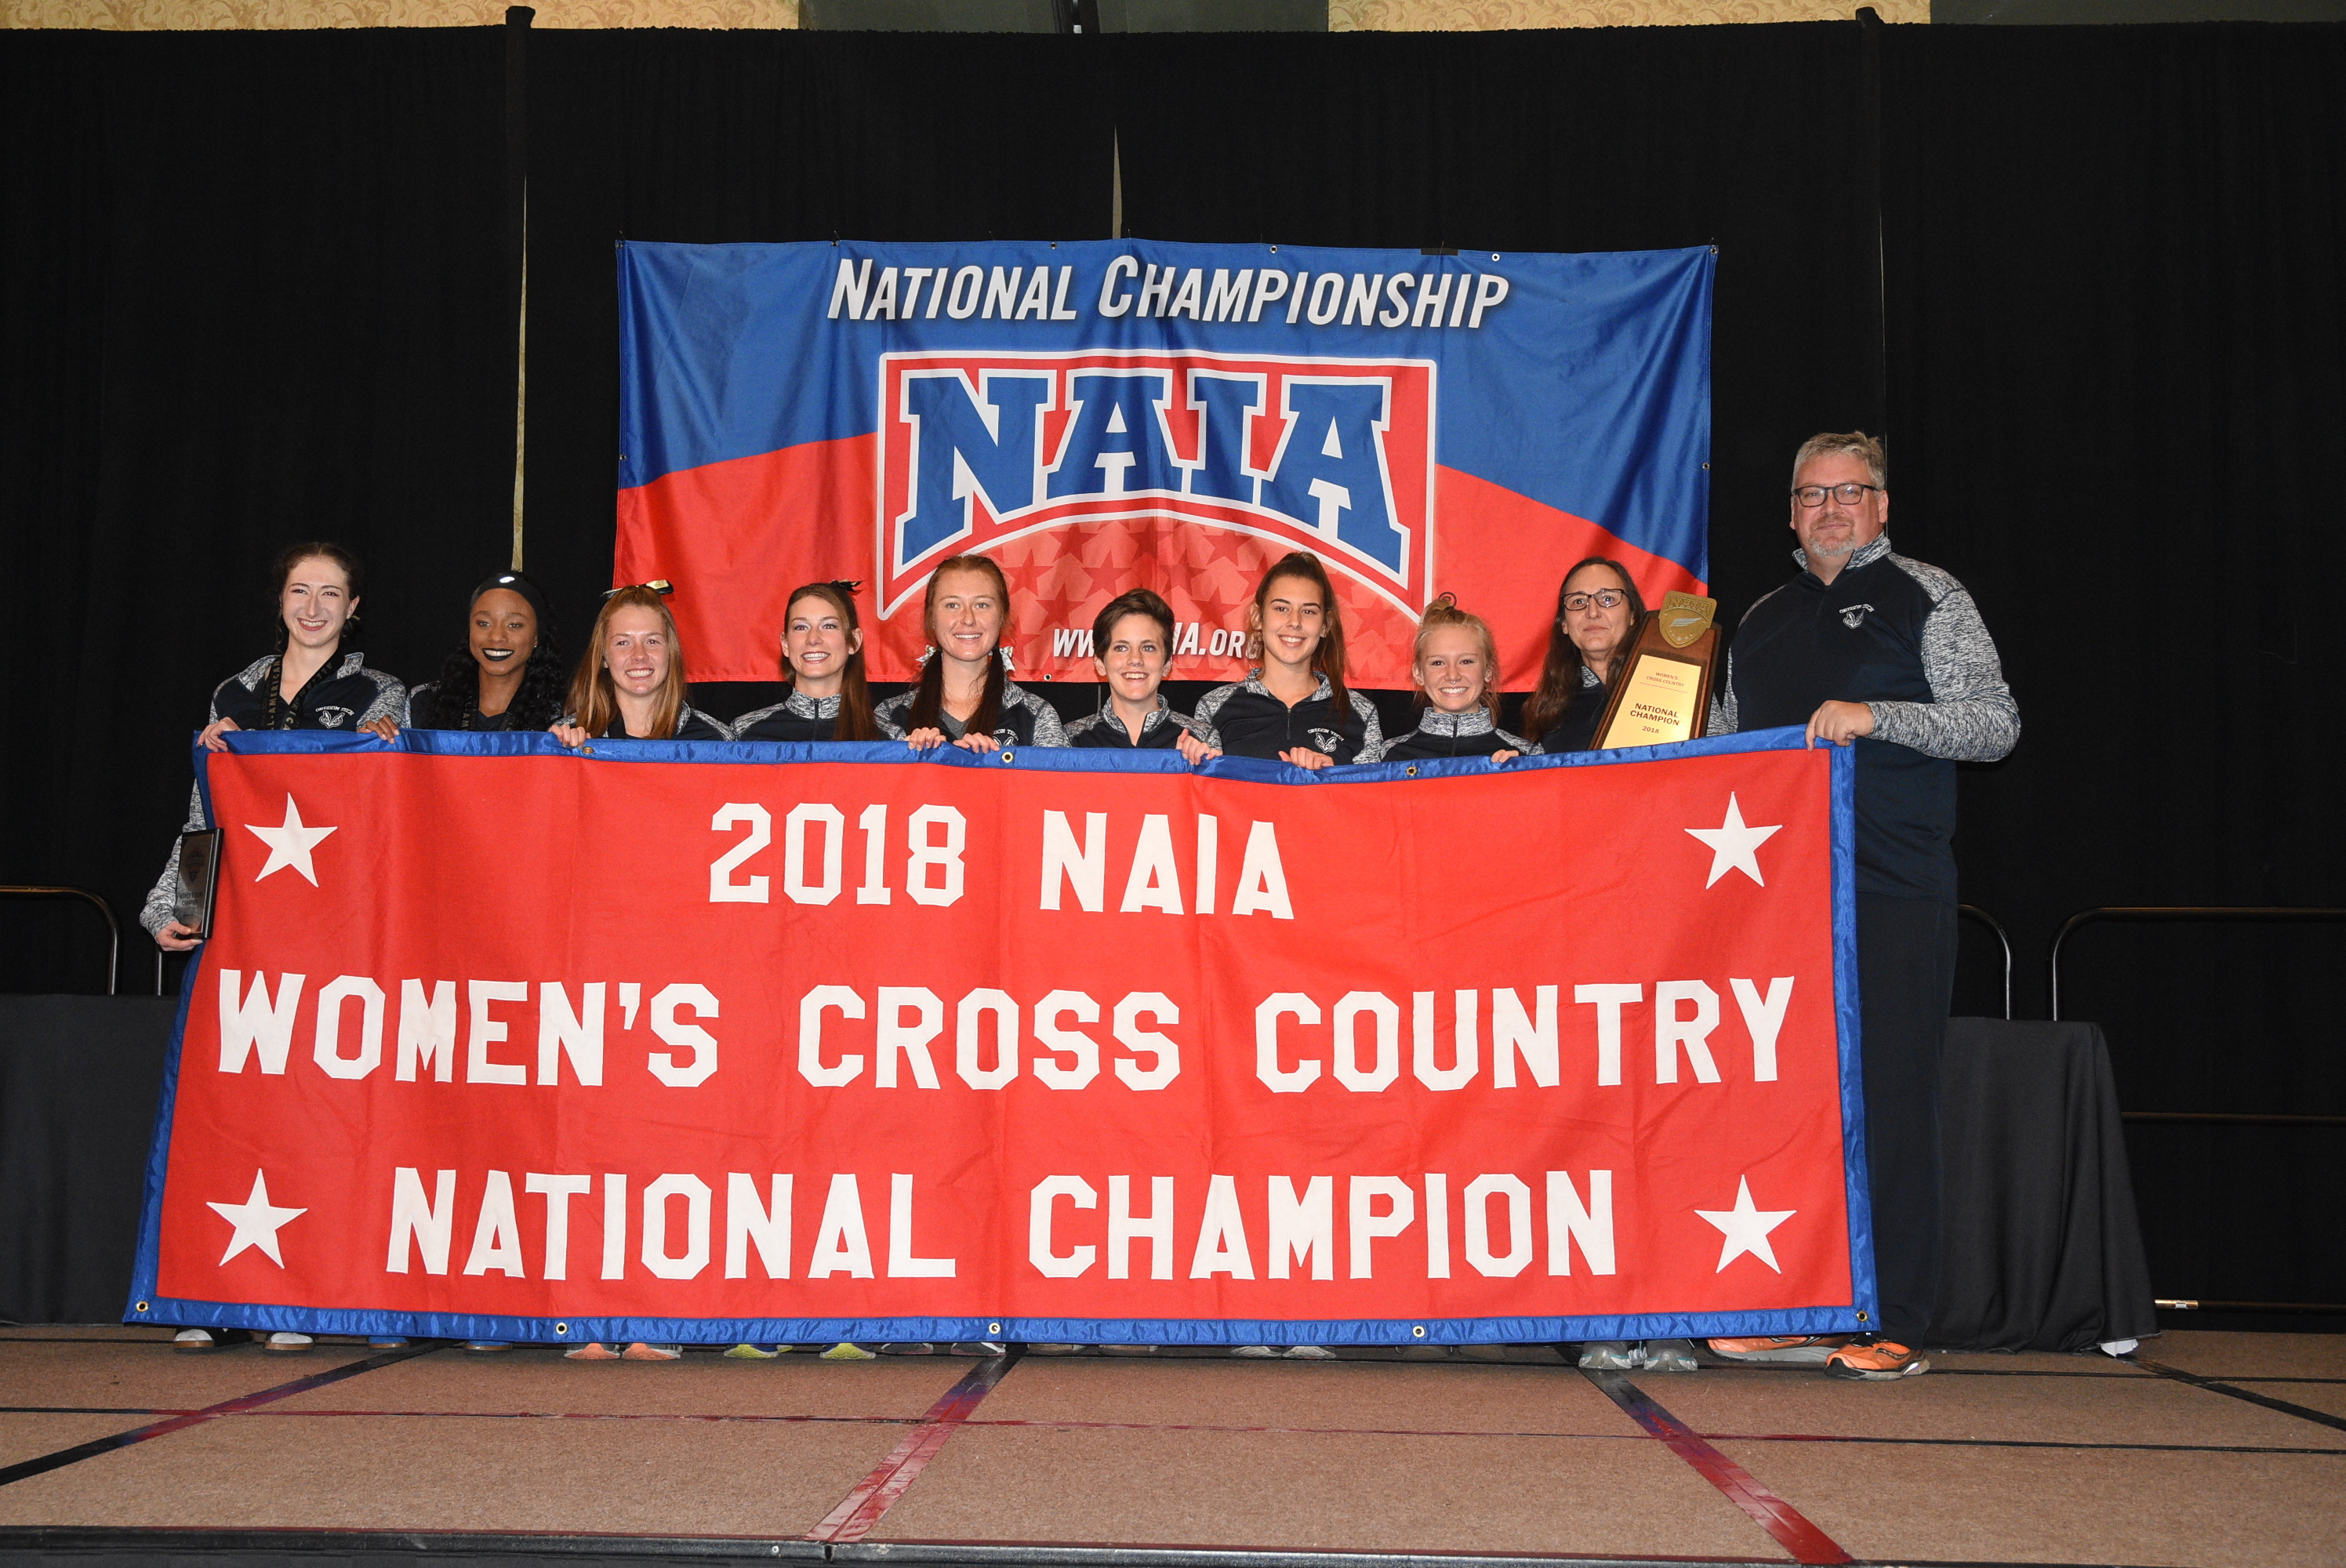 2018 NAIA Women's Cross Country Championship